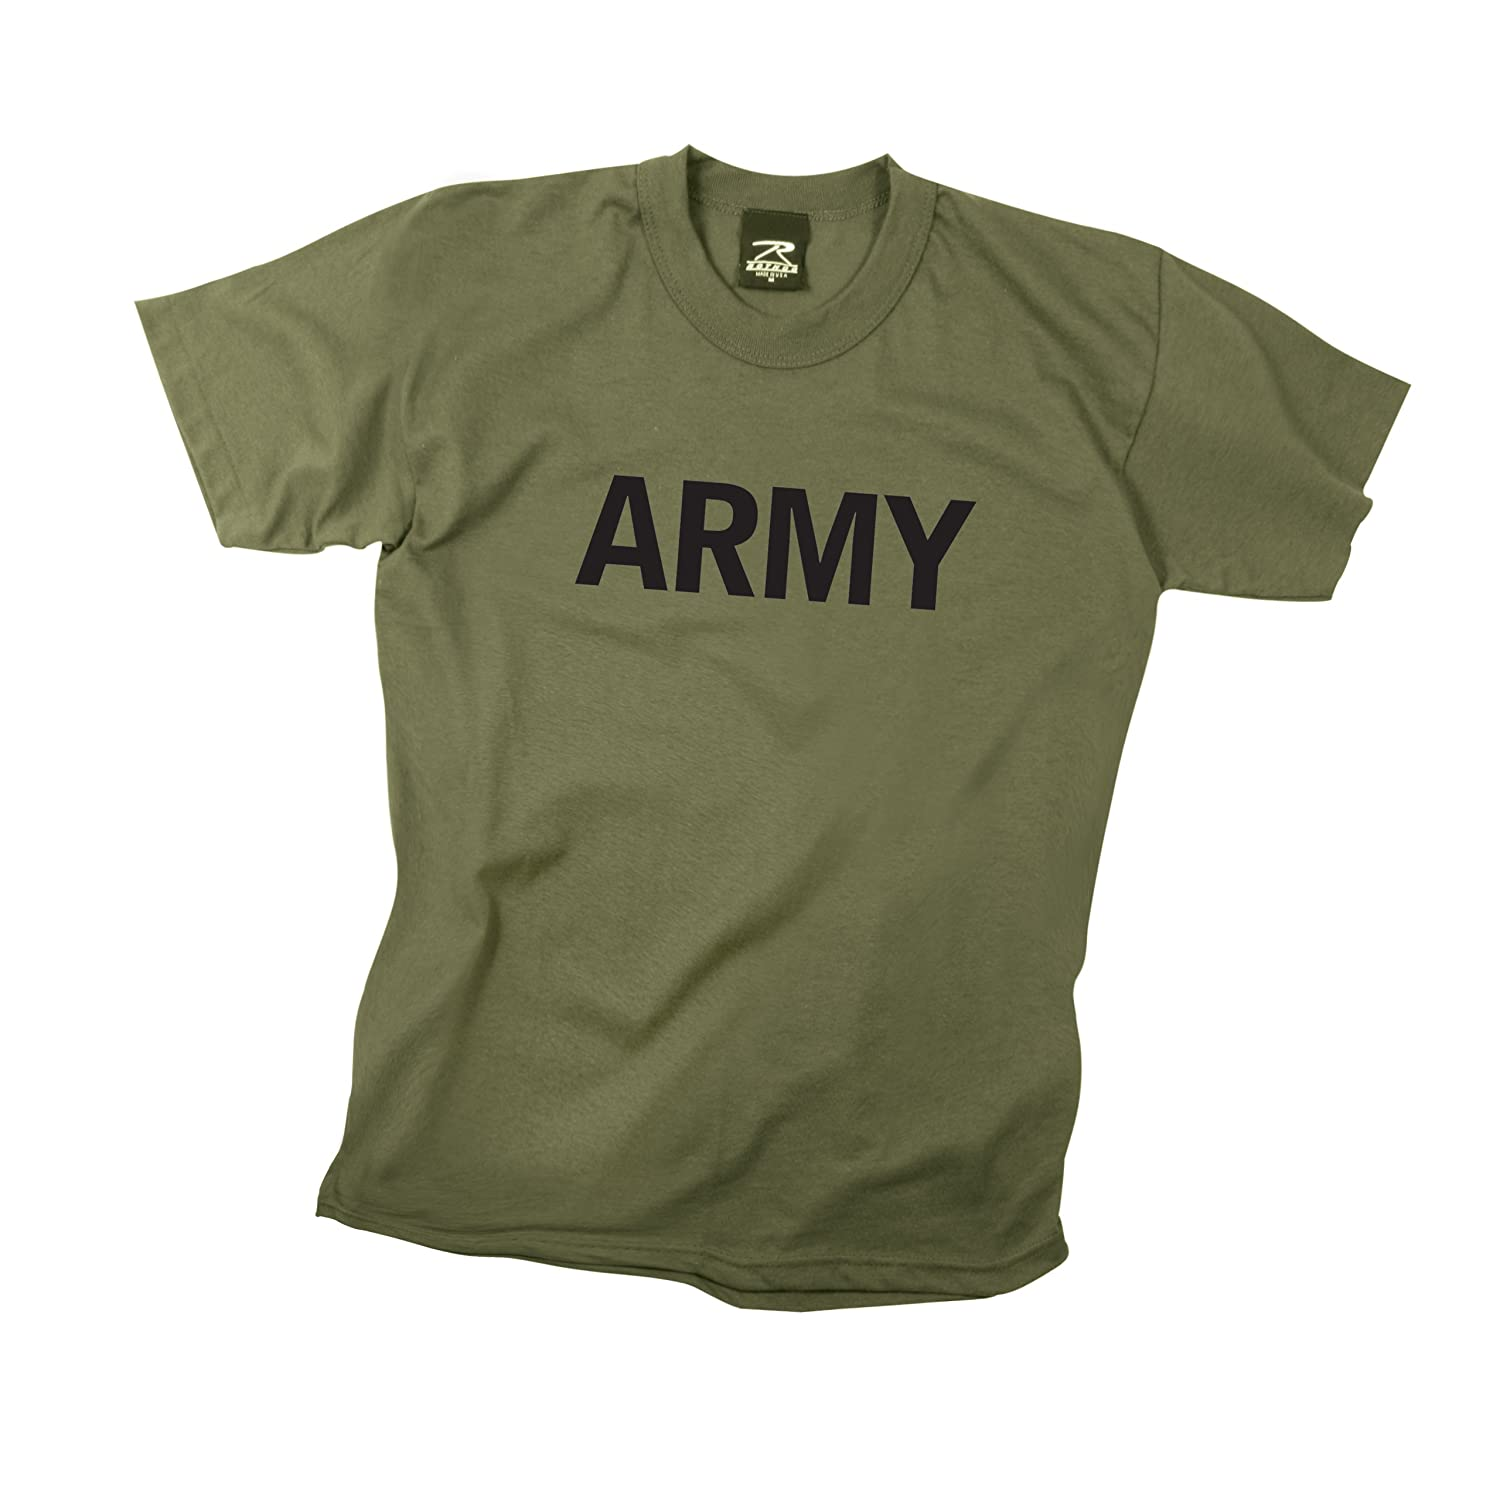 Rothco Kids T-Shirt/Army - Olive Drab RSR Group Inc 613902613638